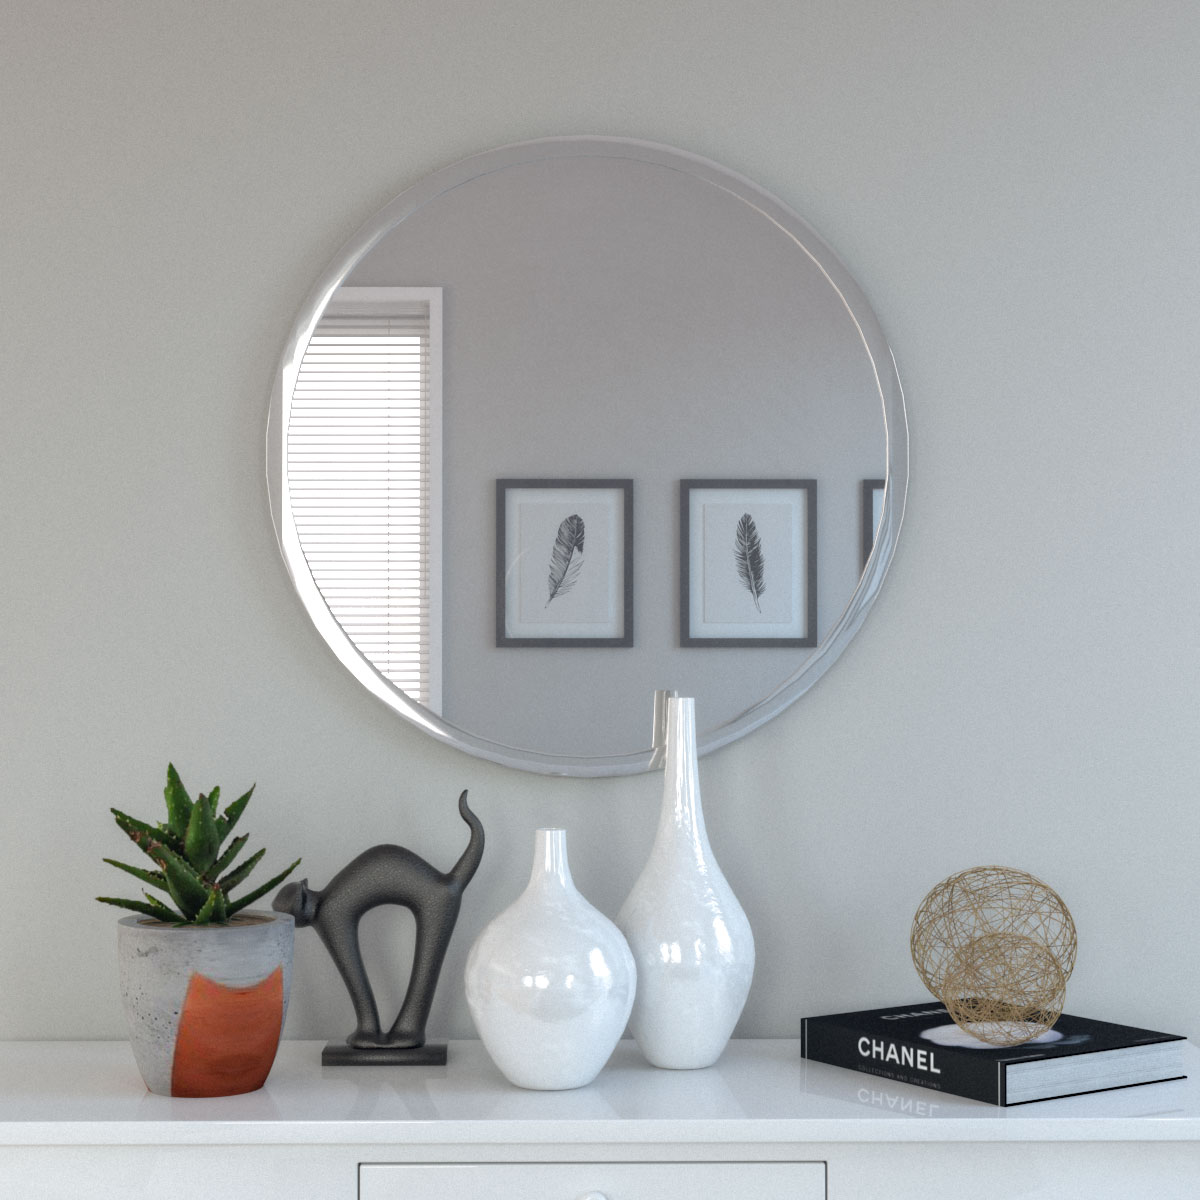 Bevel round frameless wall mirror